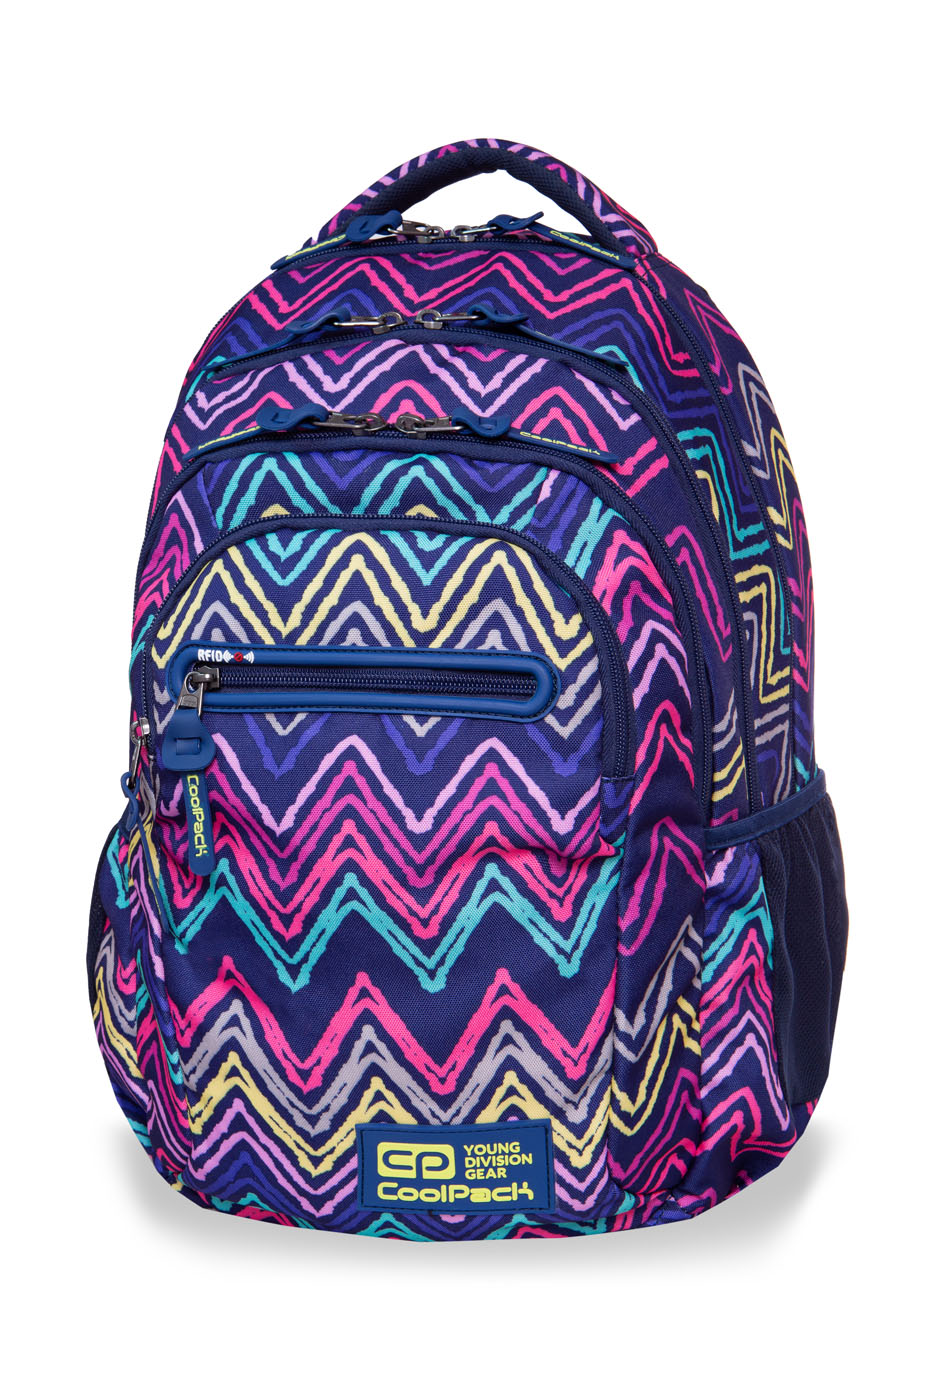 Coolpack - college tech - youth backpack - flexy